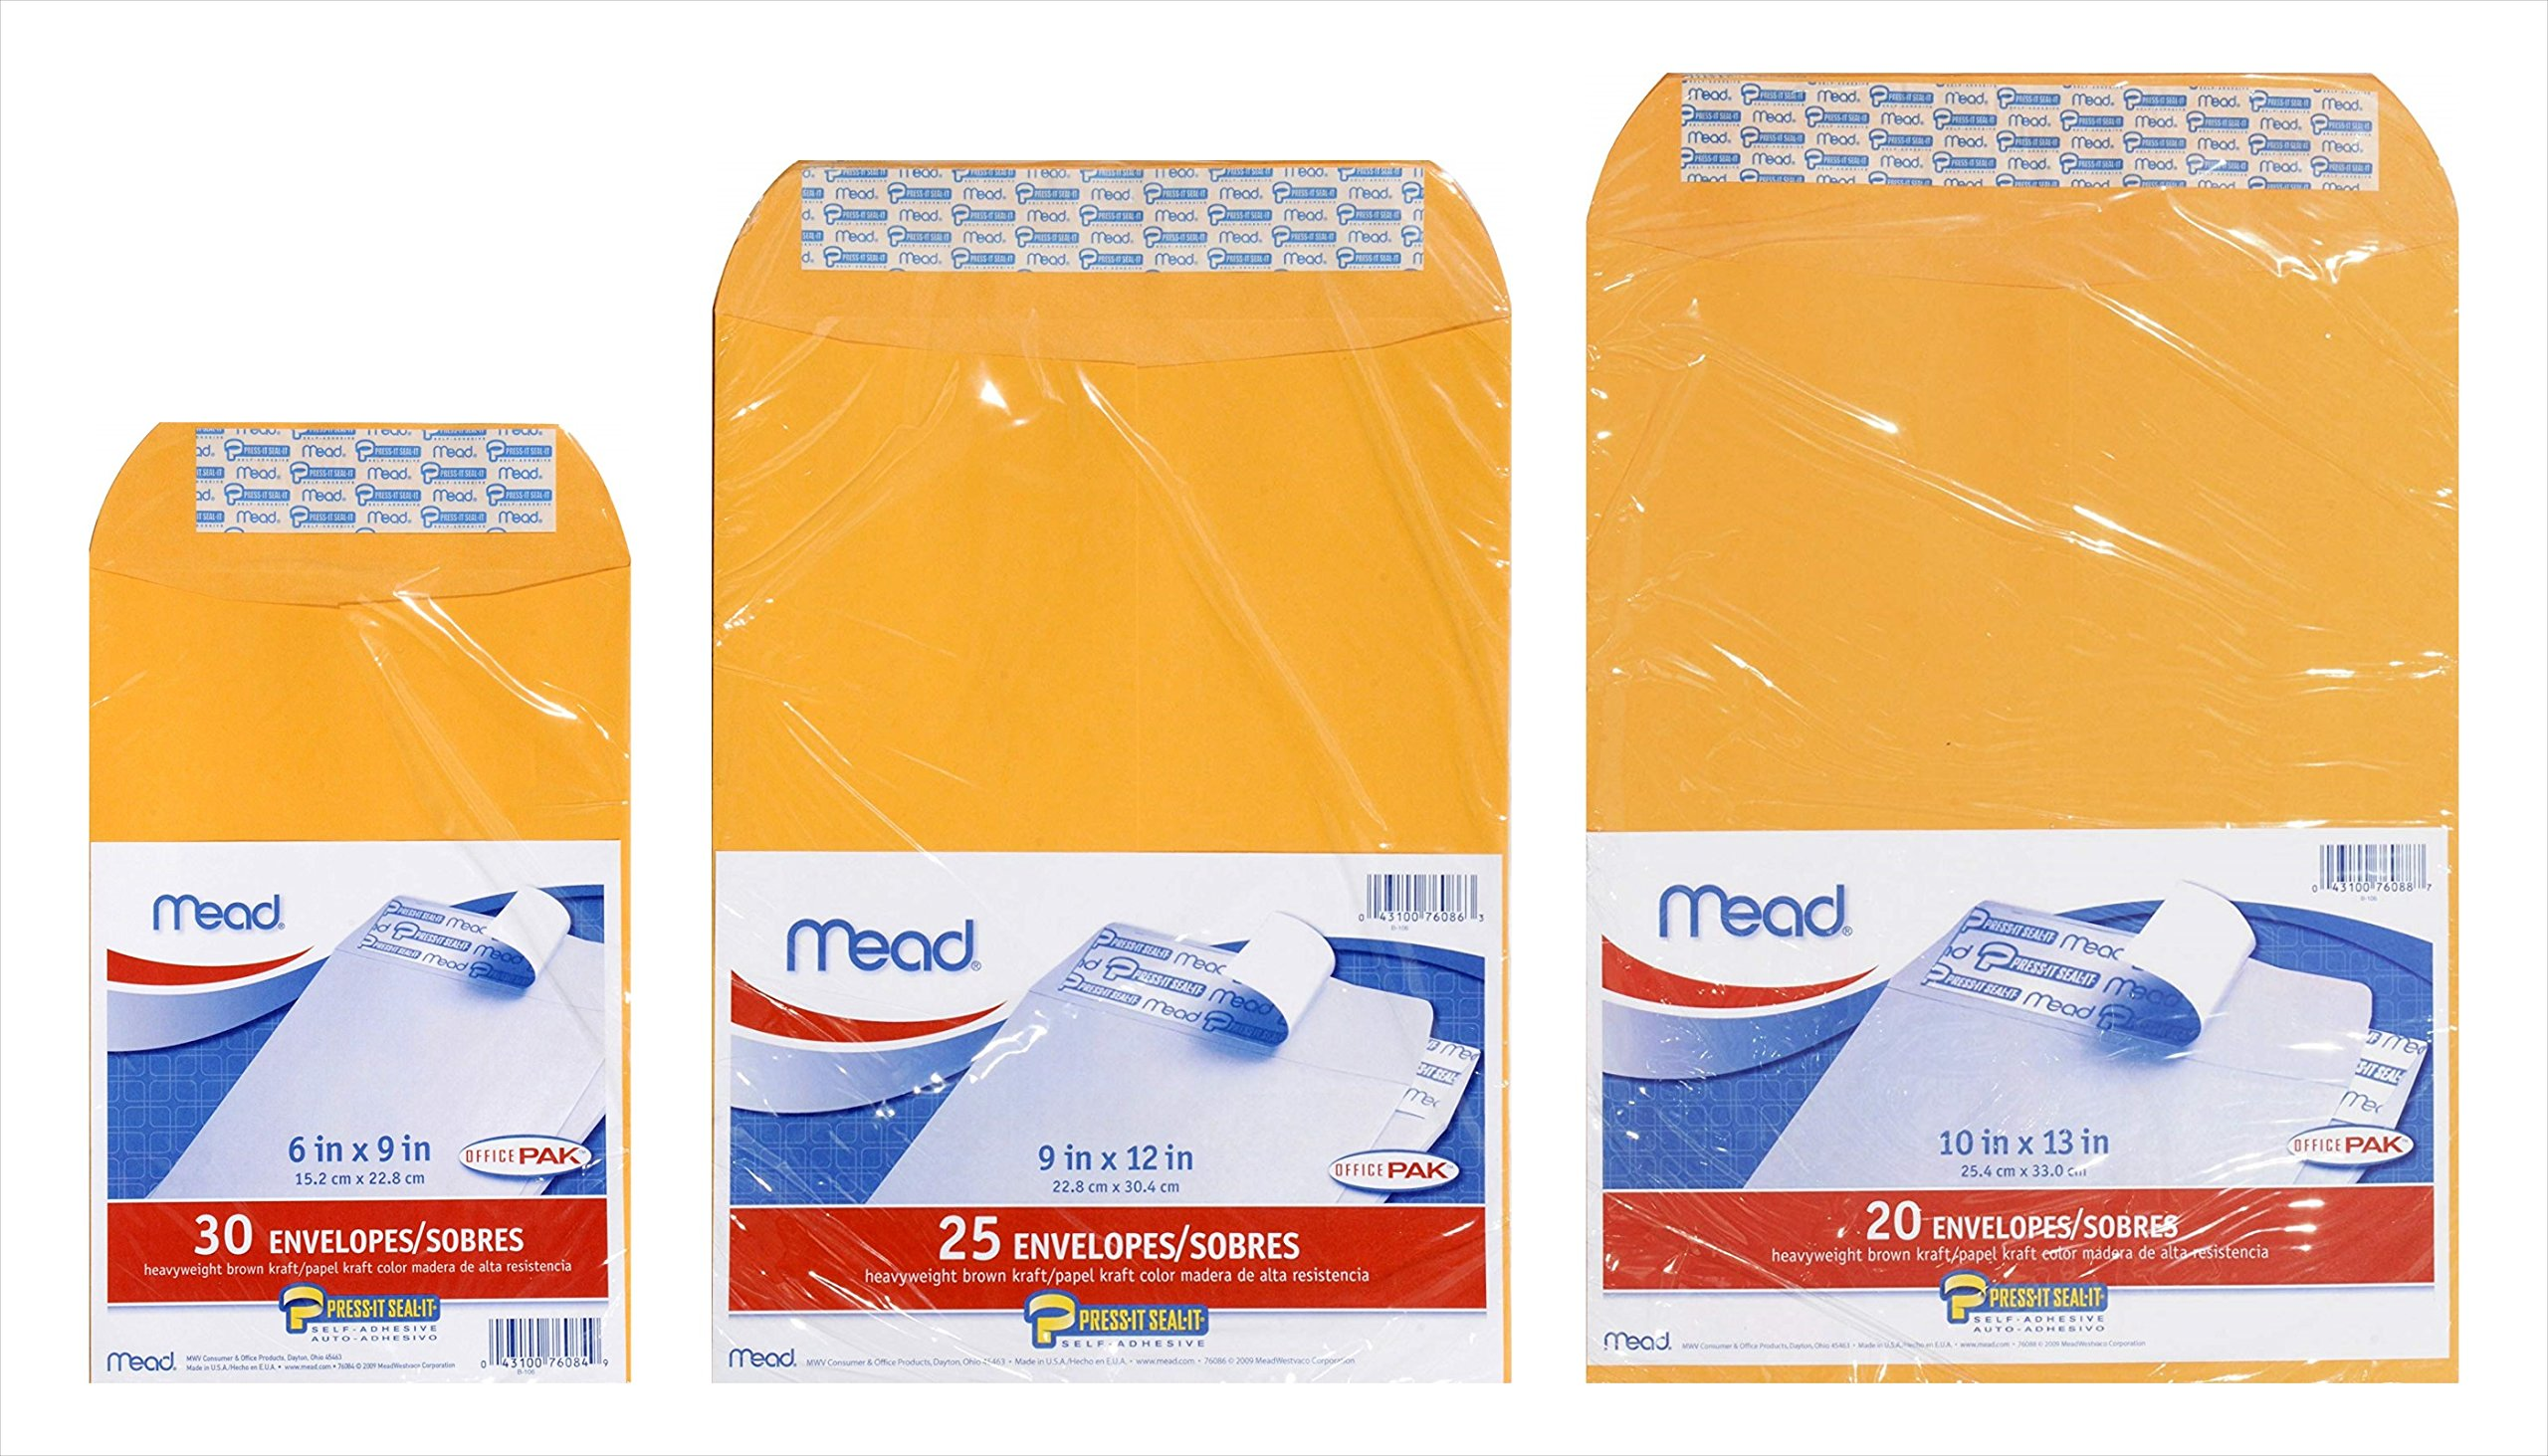 ACCO Mead OFFICEPAK, Press-it Seal-It, Self Adhesive Heavy-Weight Brown Kraft Envelopes Bundle - 6x9-inch (30 ct), 9x12-inch (25 ct), and 10x13-inch (20 ct) (Packaging May Vary)